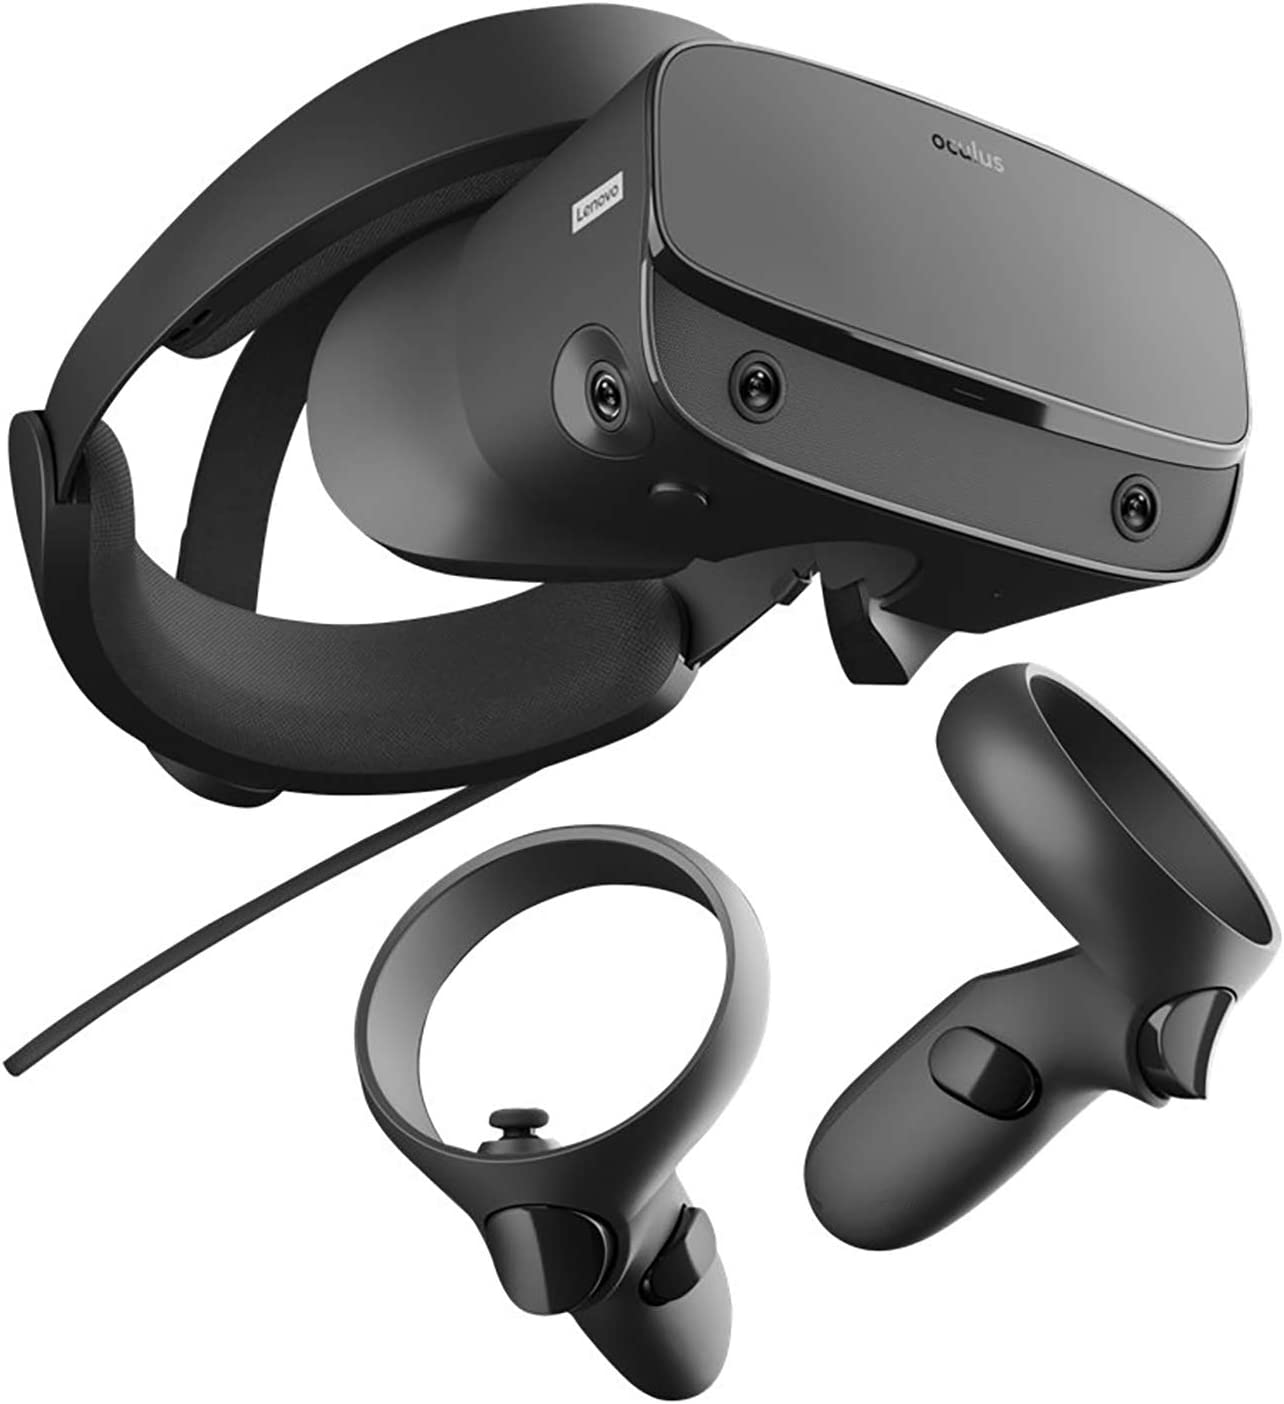 Black Adjustable Halo Headband 5FT USB Extension Cable 3D Positional Audio Rift S PC-Powered VR Gaming Headset BROAGE Glasses Cleaning Cloth Two Touch Controller Insight Tracking Oculus